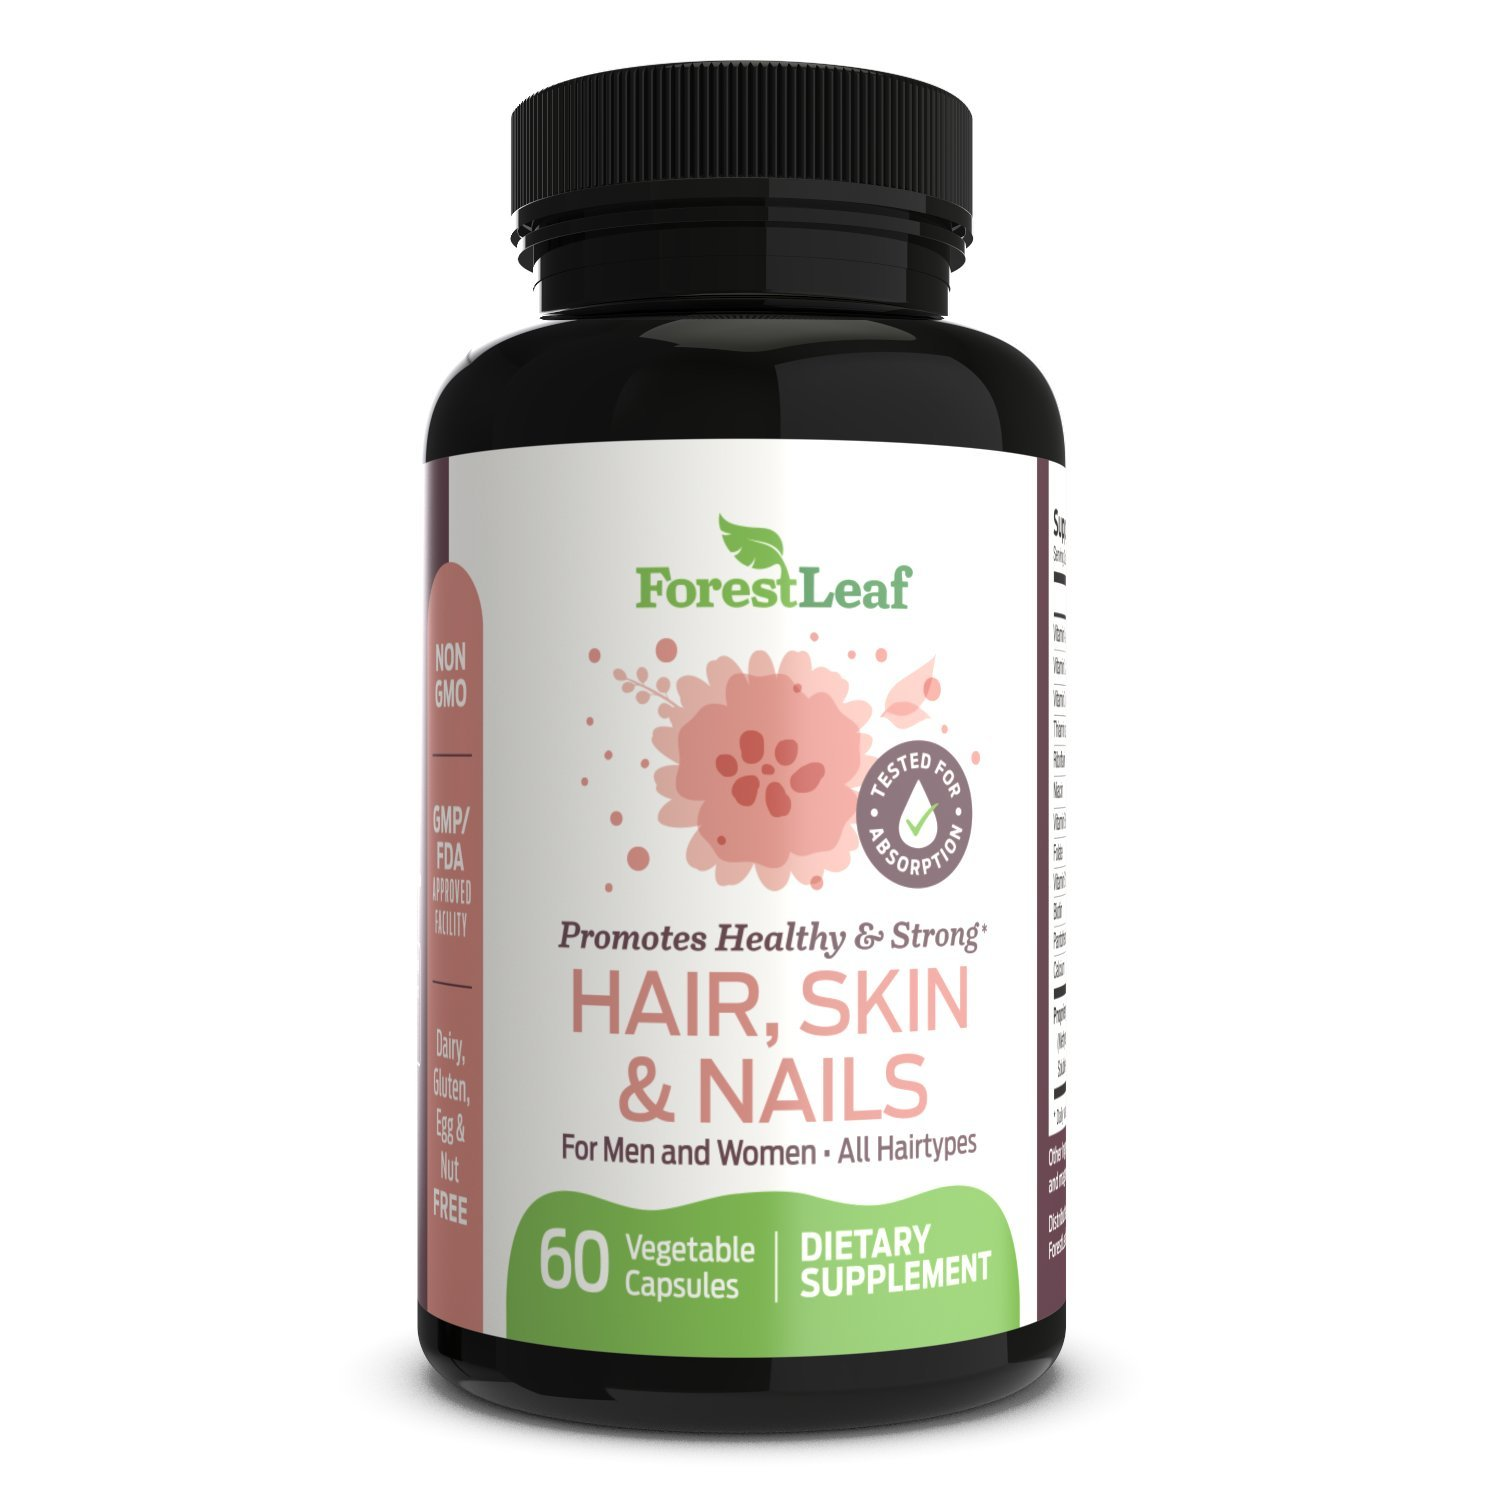 Hair Skin and Nails Supplement For Men and Women - All Natural Biotin, Keratin, Bamboo Regrowth Formula For All Hair Types - 60 Vegetarian Capsules – By Forestleaf